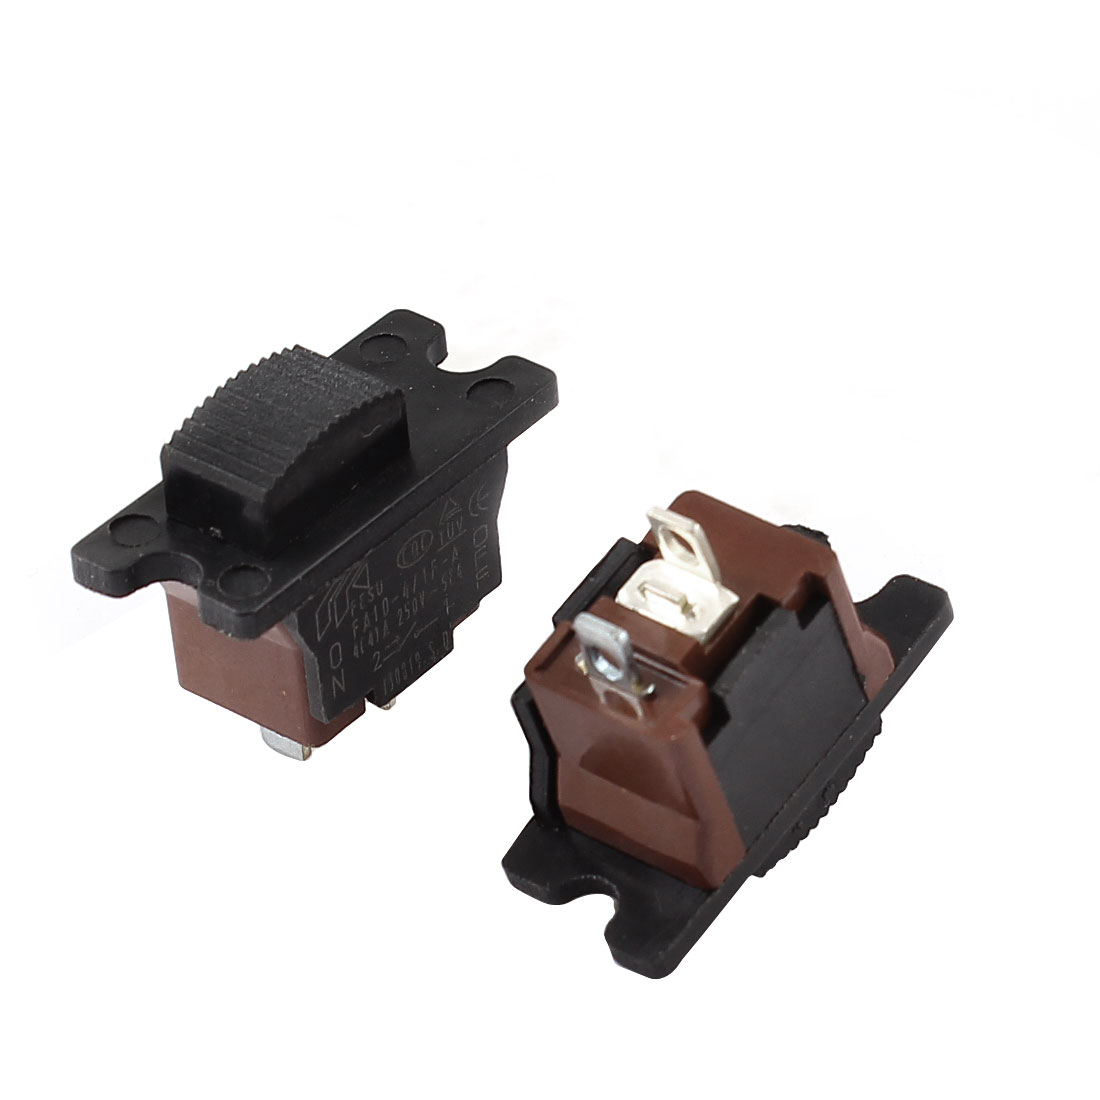 2 Pcs Replacment SPST ON Off Electric Grinder Power Tool Switch AC 250V 4A